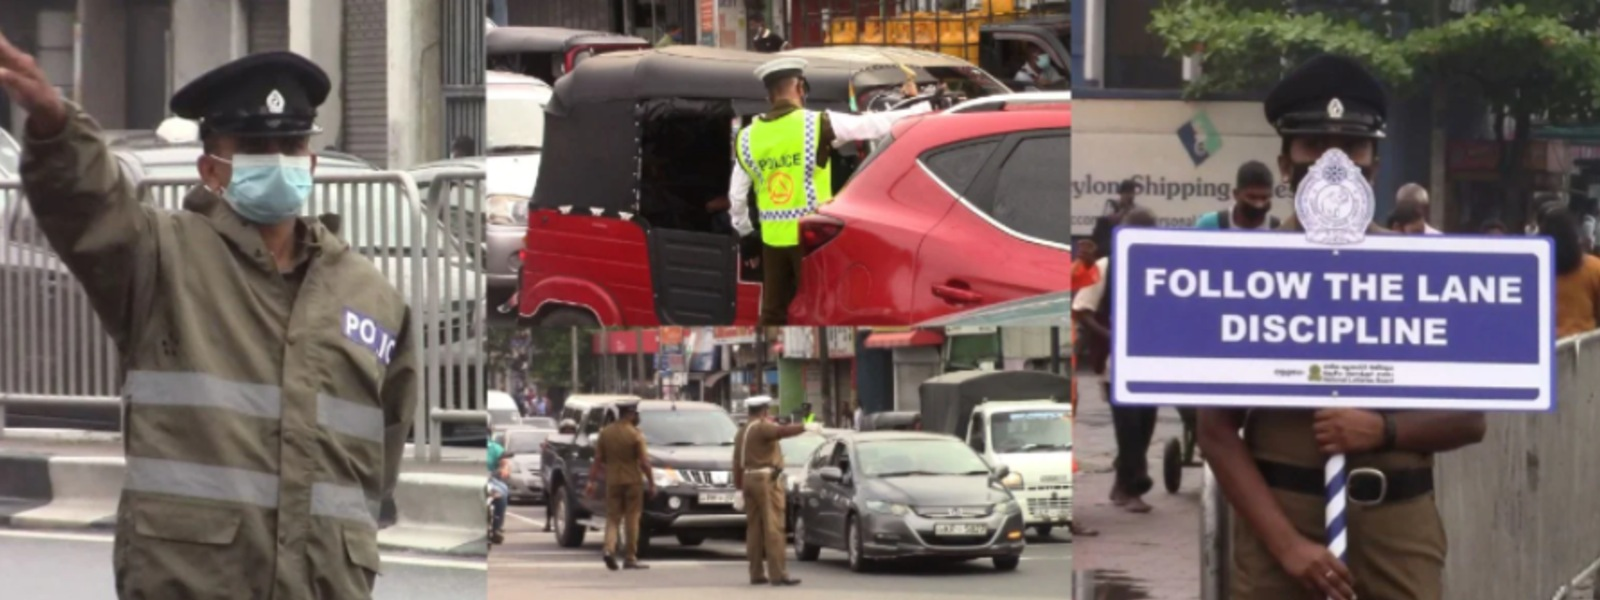 Over 1000 Traffic Lane Law violators to be cautioned by Police